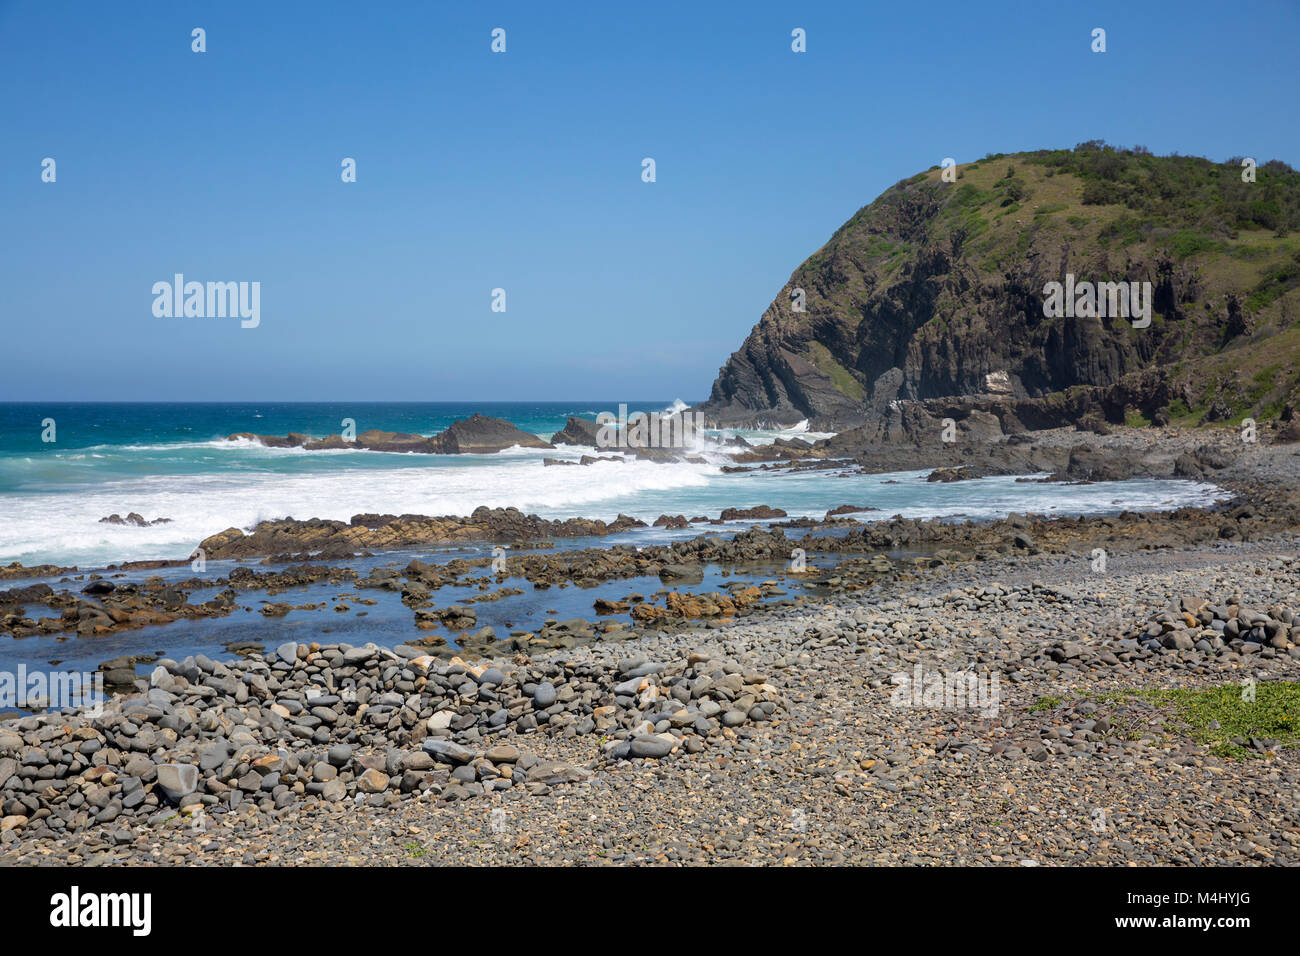 Pebbly beach at Crescent Head location on the mid north coast of New South Wales, Australia - Stock Image